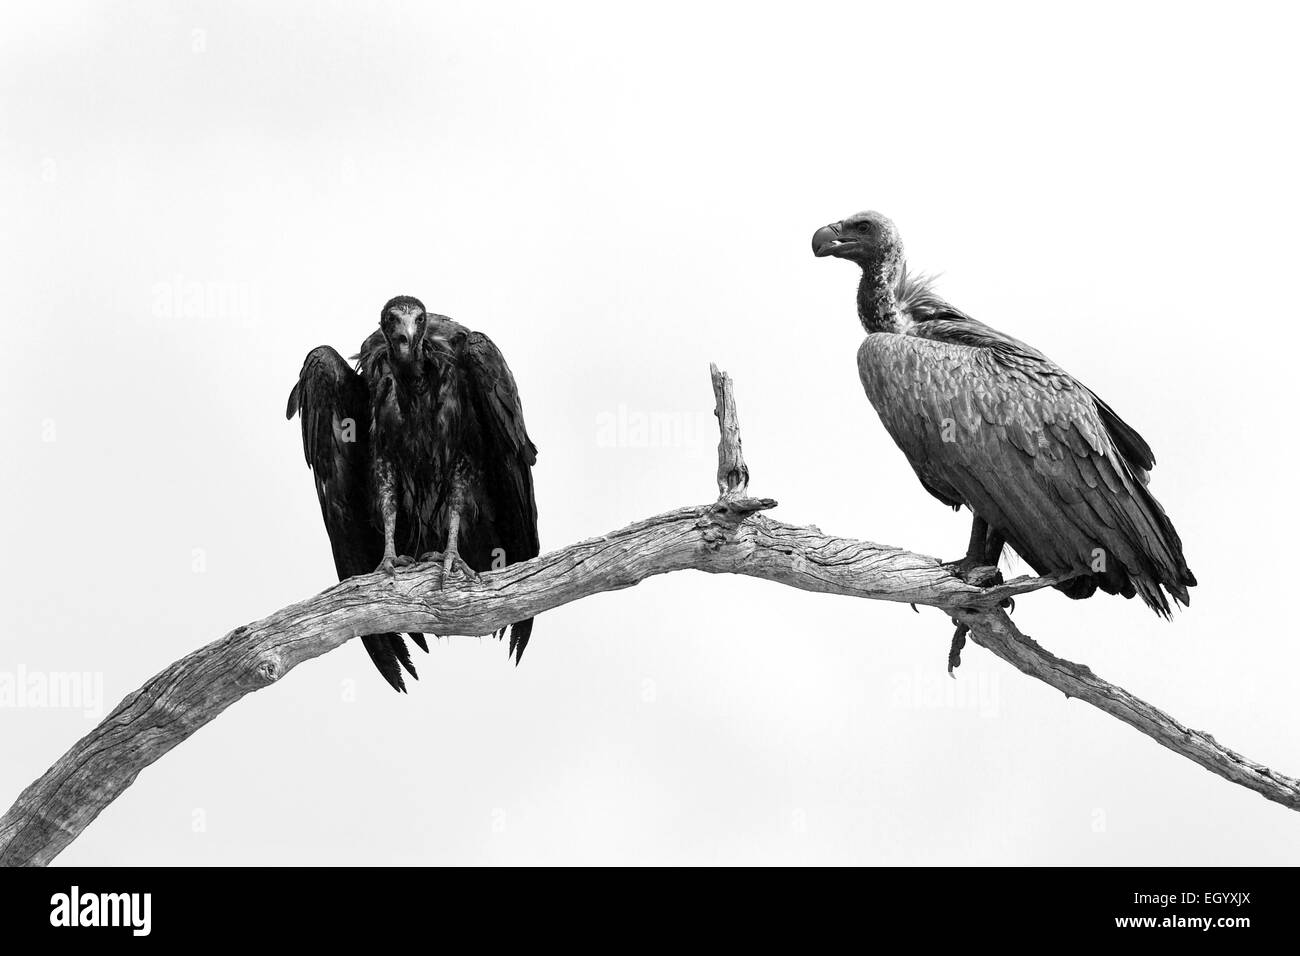 A white-backed and hooded vulture perched in a tree in Savuti, Chobe national park, Botswana - Stock Image